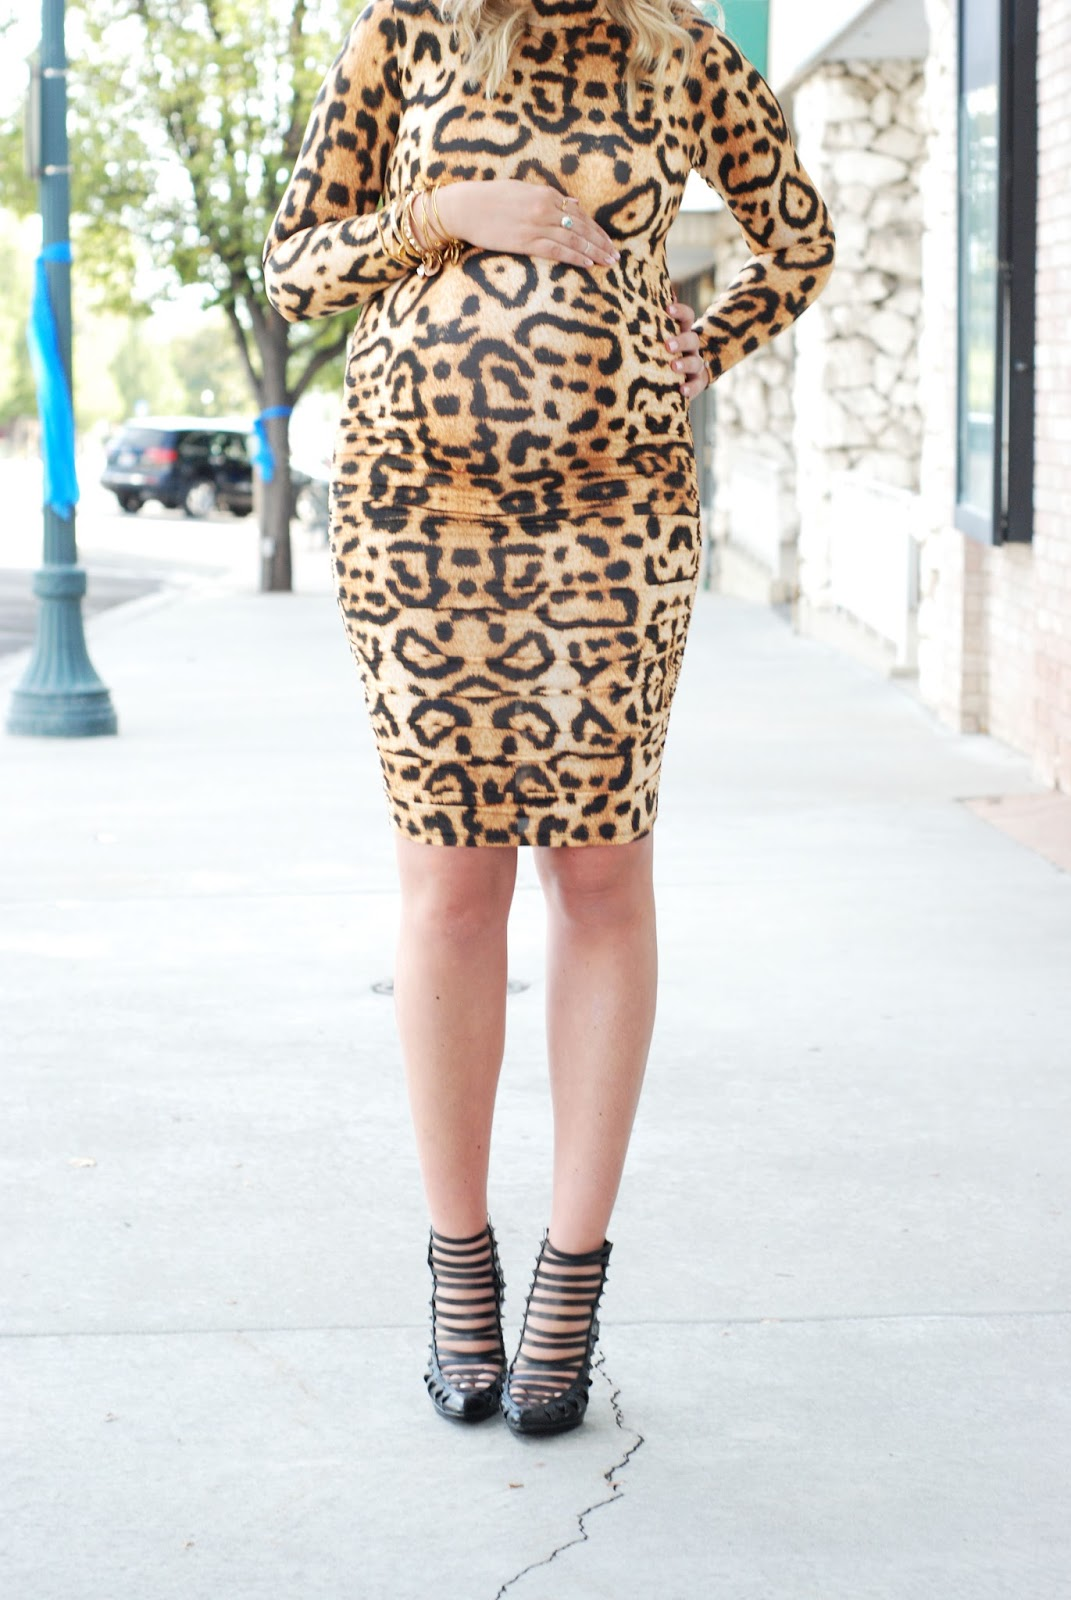 Leopard Dress, Utah Fashion Blogger, Fall Outfit